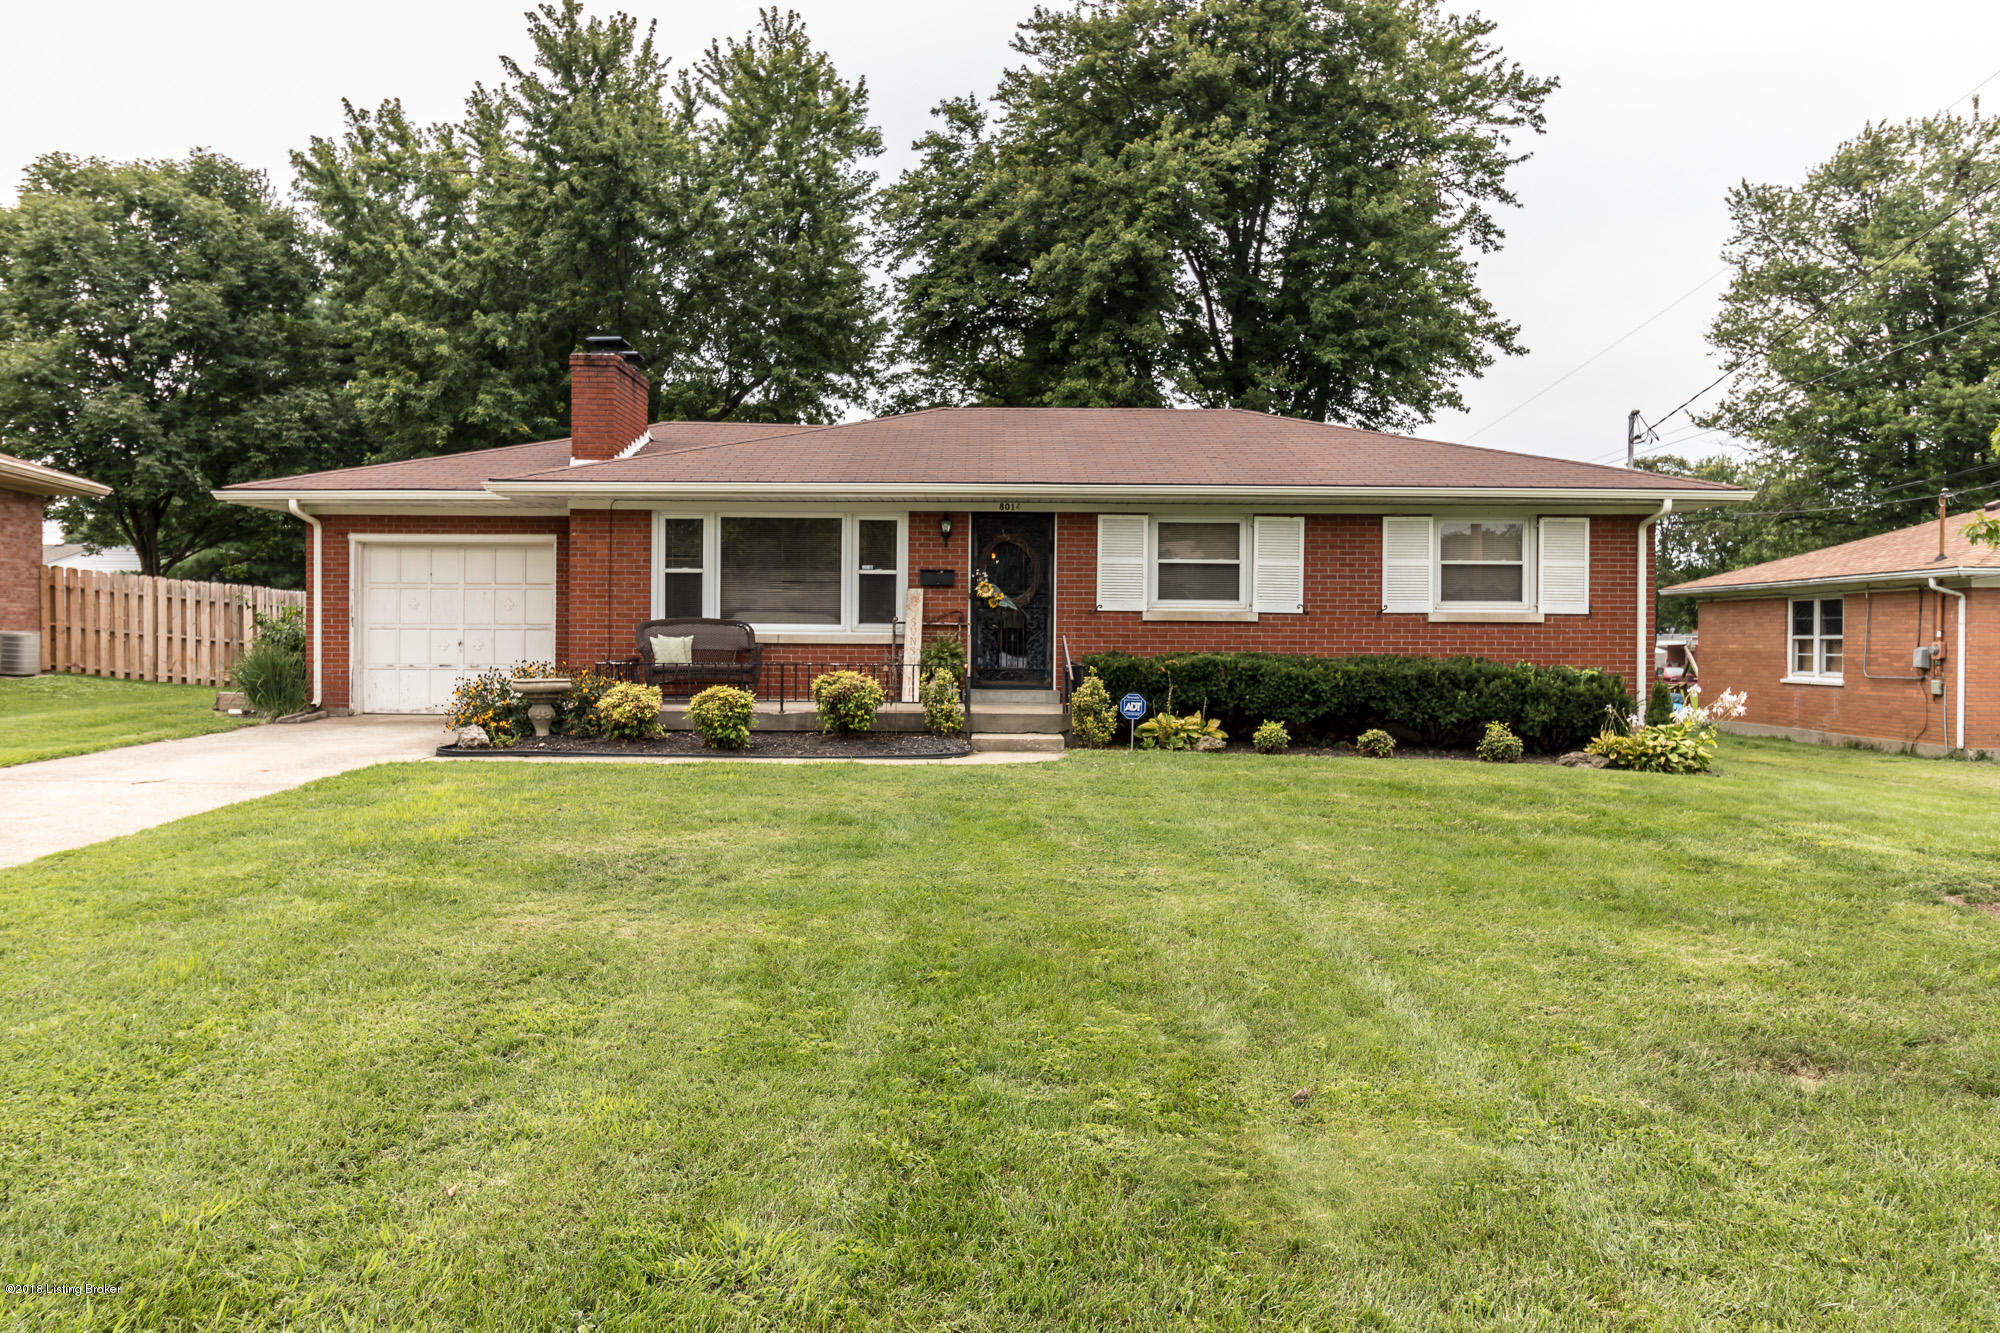 8014 White Cedar Dr, Louisville, KY | MLS# 1512963 | Mark Haynes